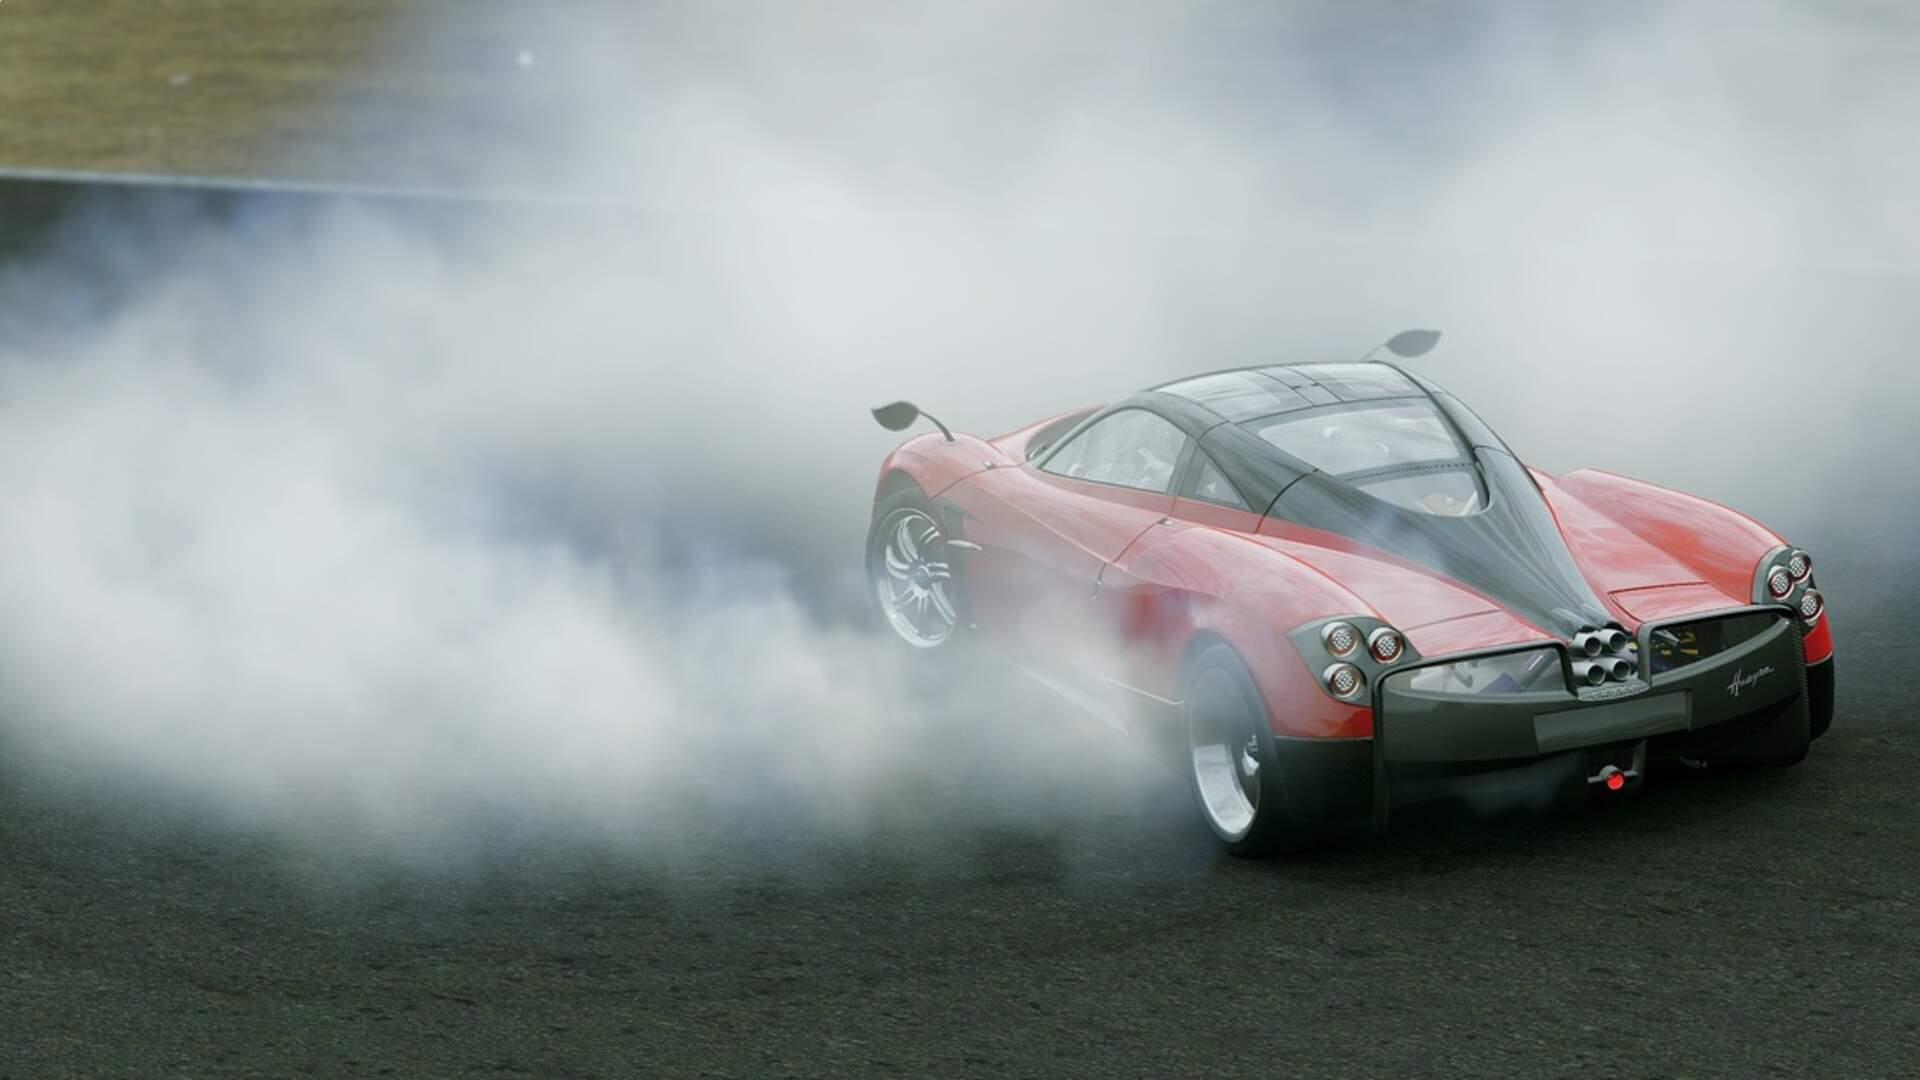 Project Cars Preview: Looks like a Thoroughbred